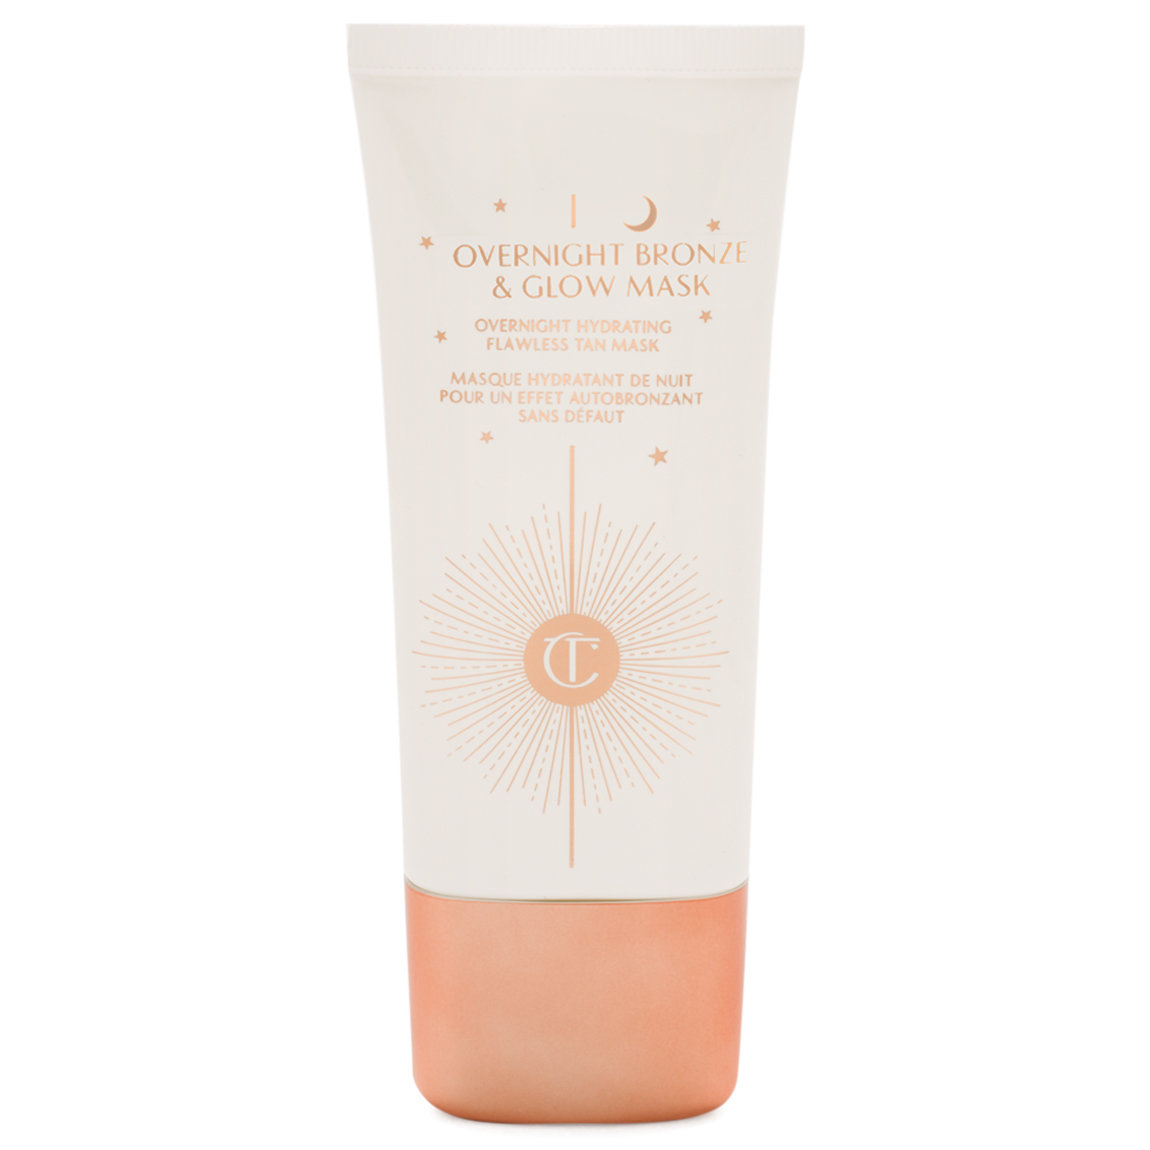 Charlotte Tilbury Overnight Bronze and Glow Mask product smear.